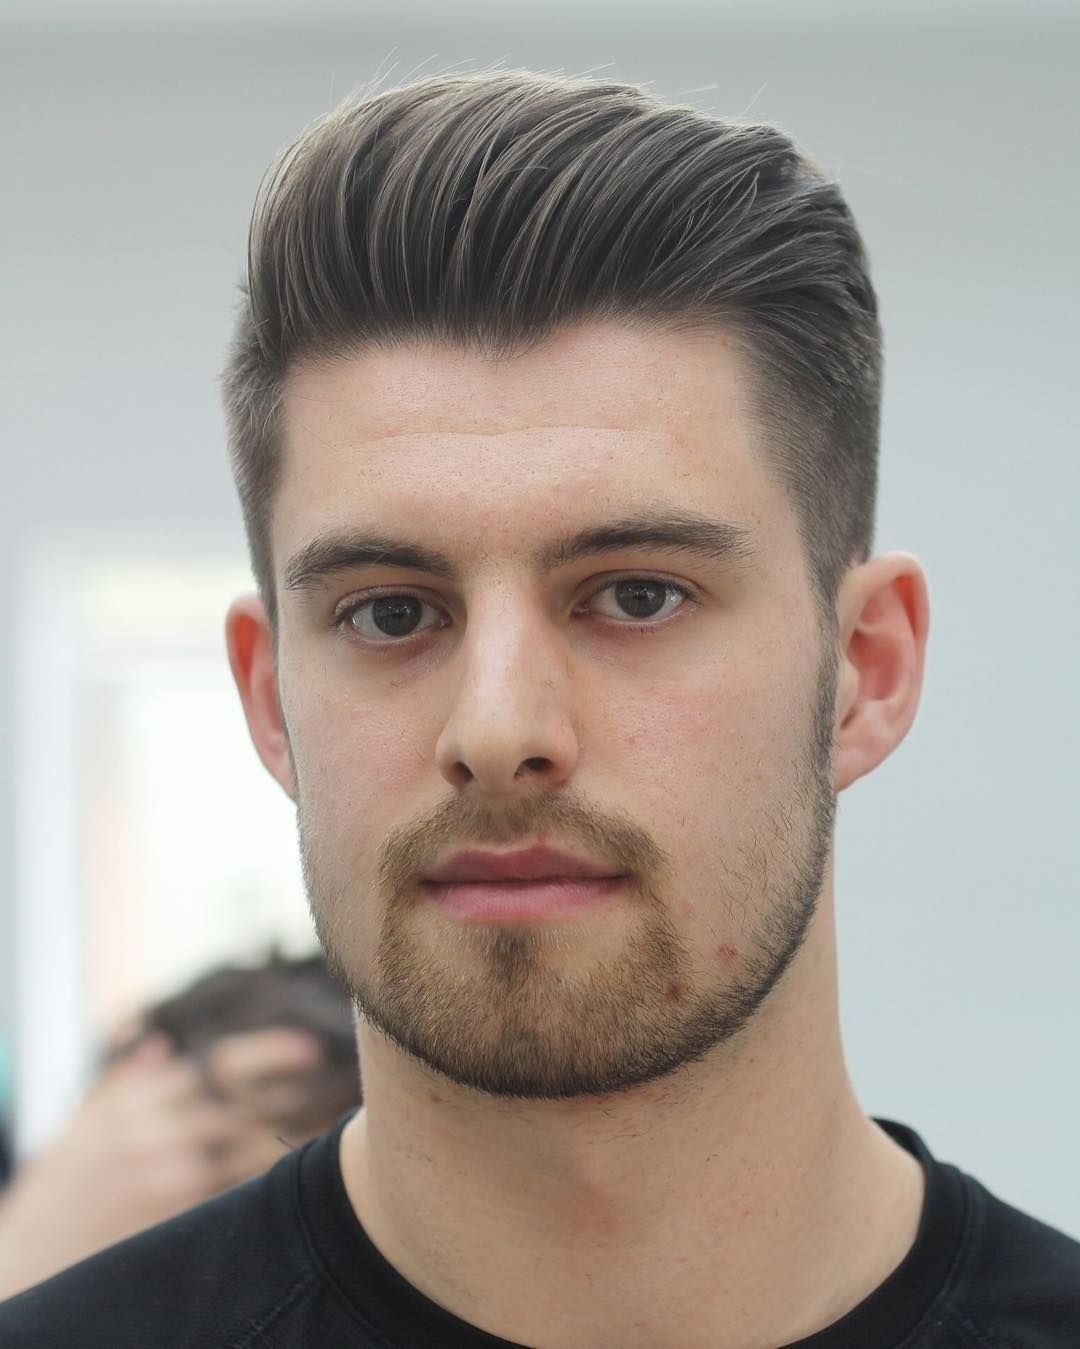 Professional Medium Length Mens Hairstyles 2019 In 2020 30+ Awesome Medium Mens Hairstyles 2019